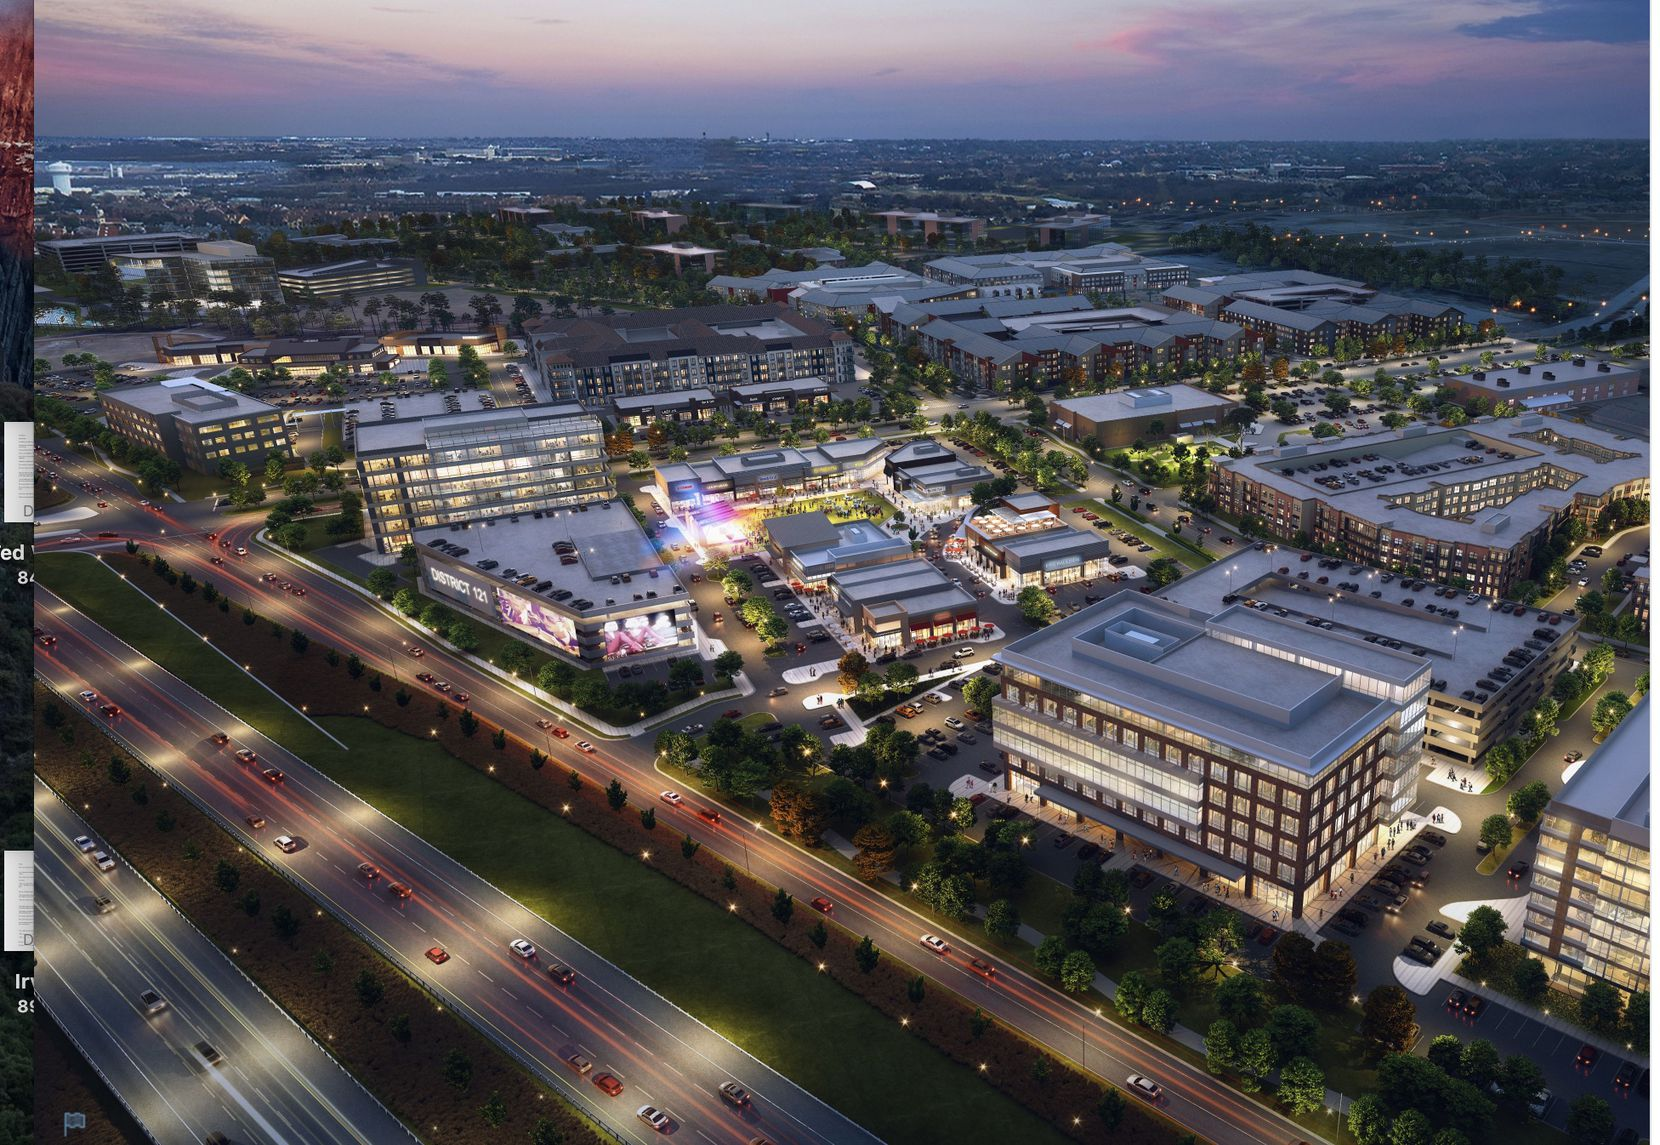 The $250 million District 121 project will include offices and retail along State Highway 121 in McKinney.